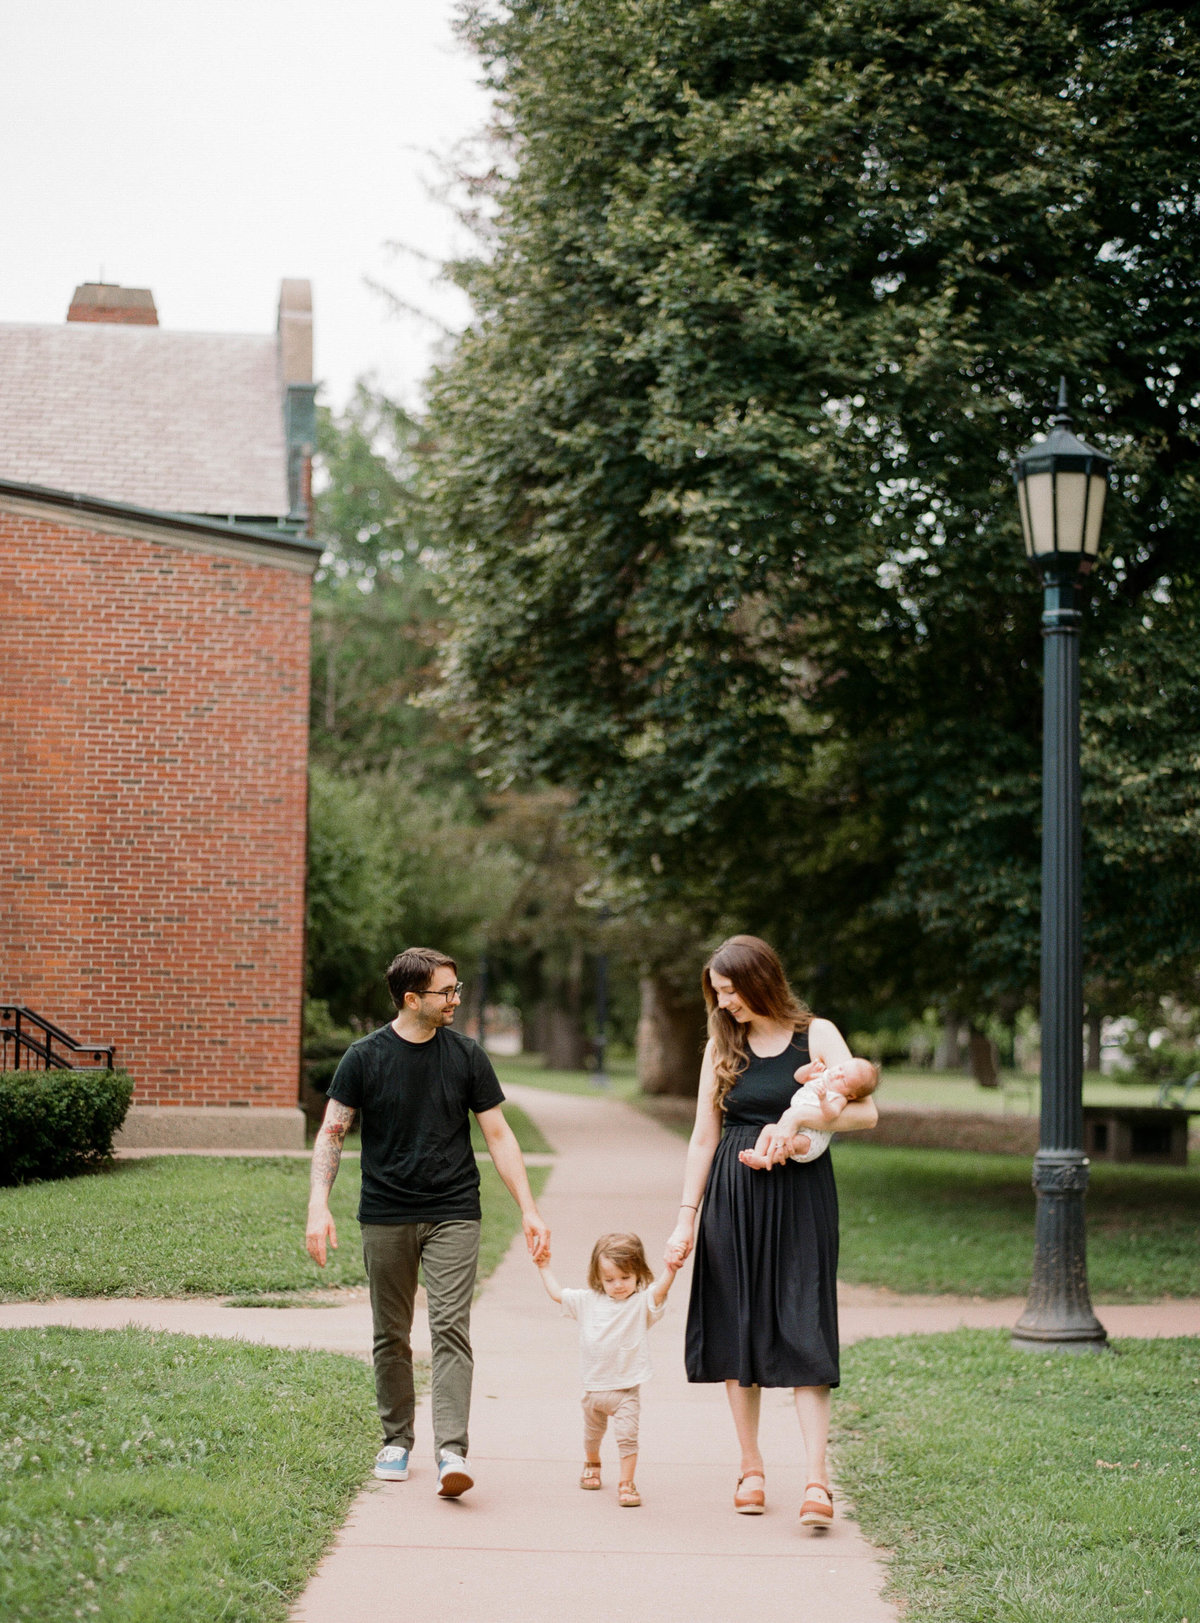 gabby-riggieri-photography-boston-family-photographer-7